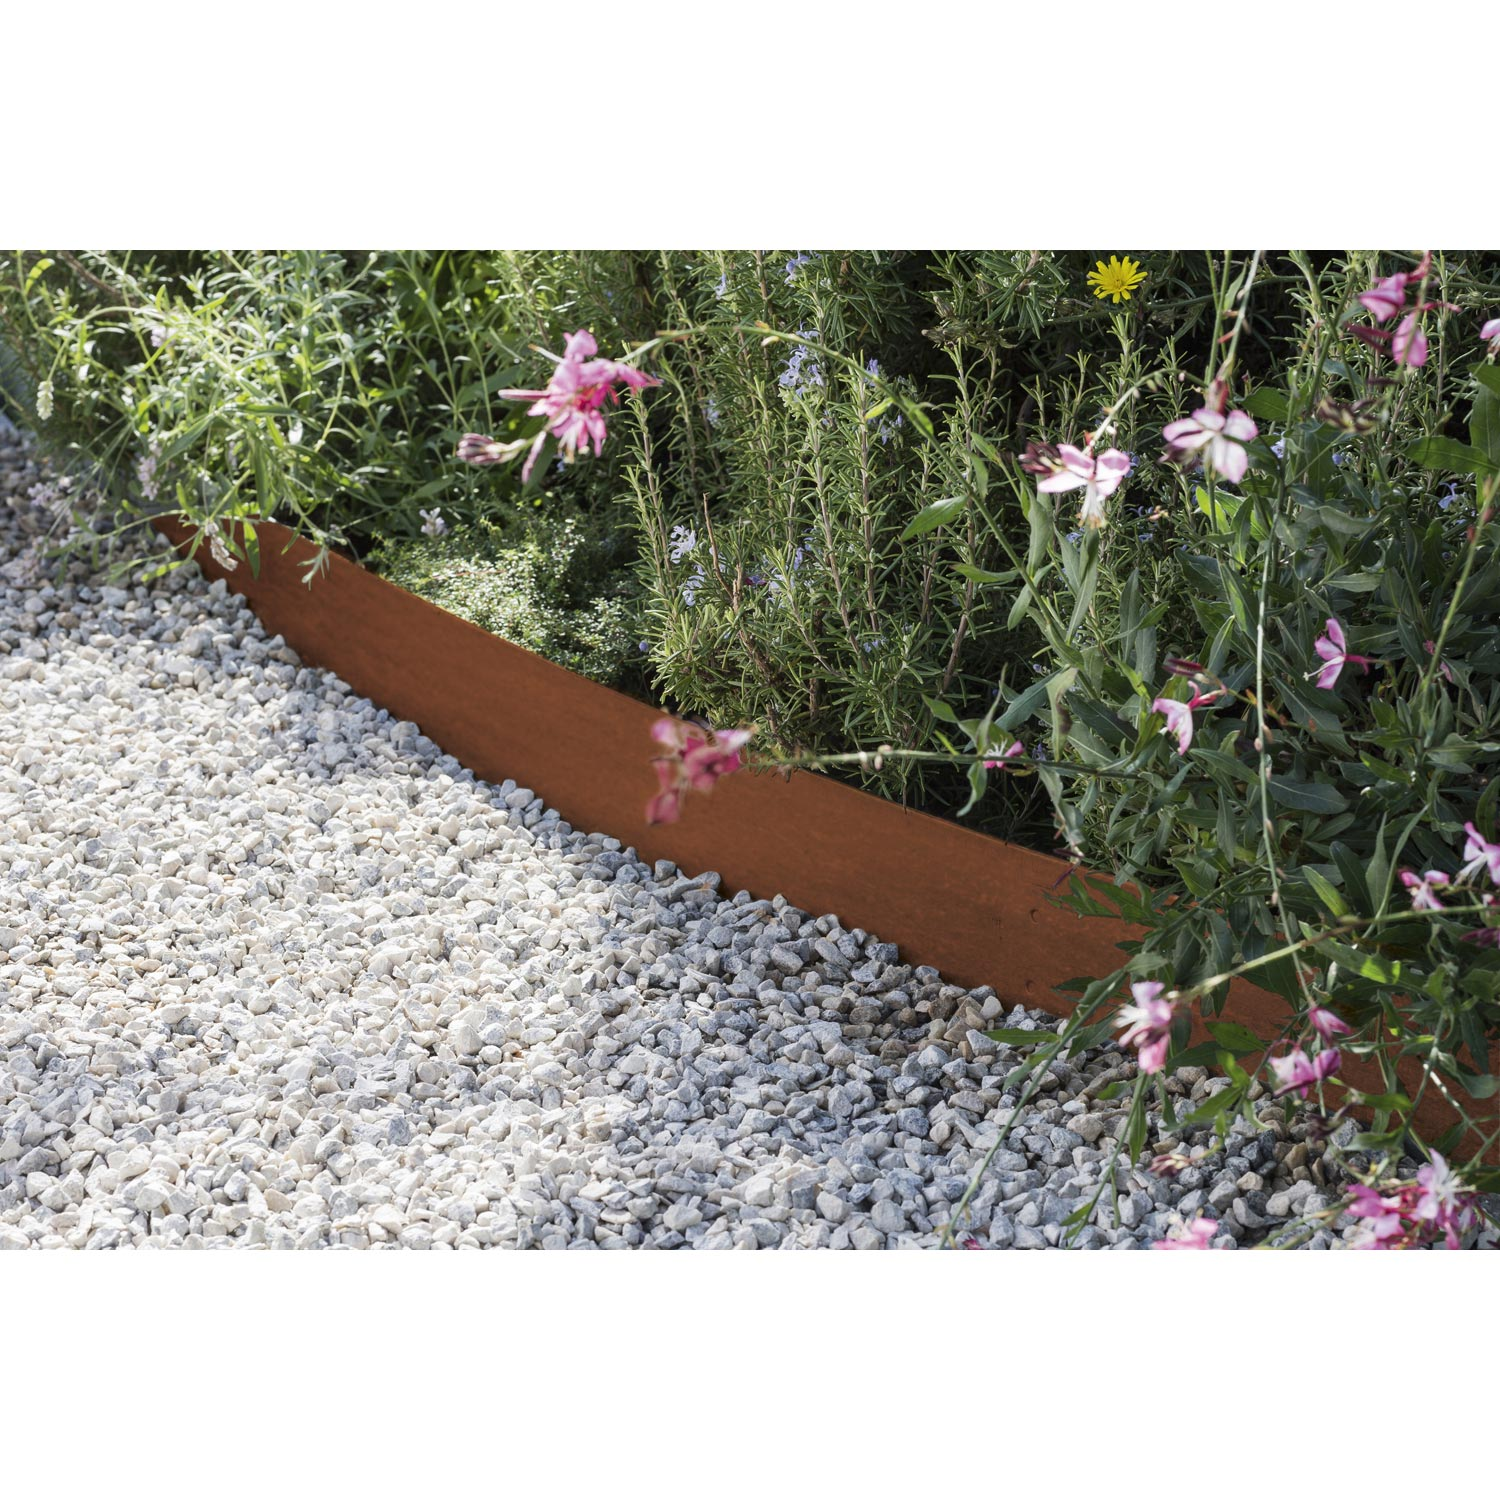 Bordure planter aspect rouille acier galvanis gris h for Bordure jardin acier